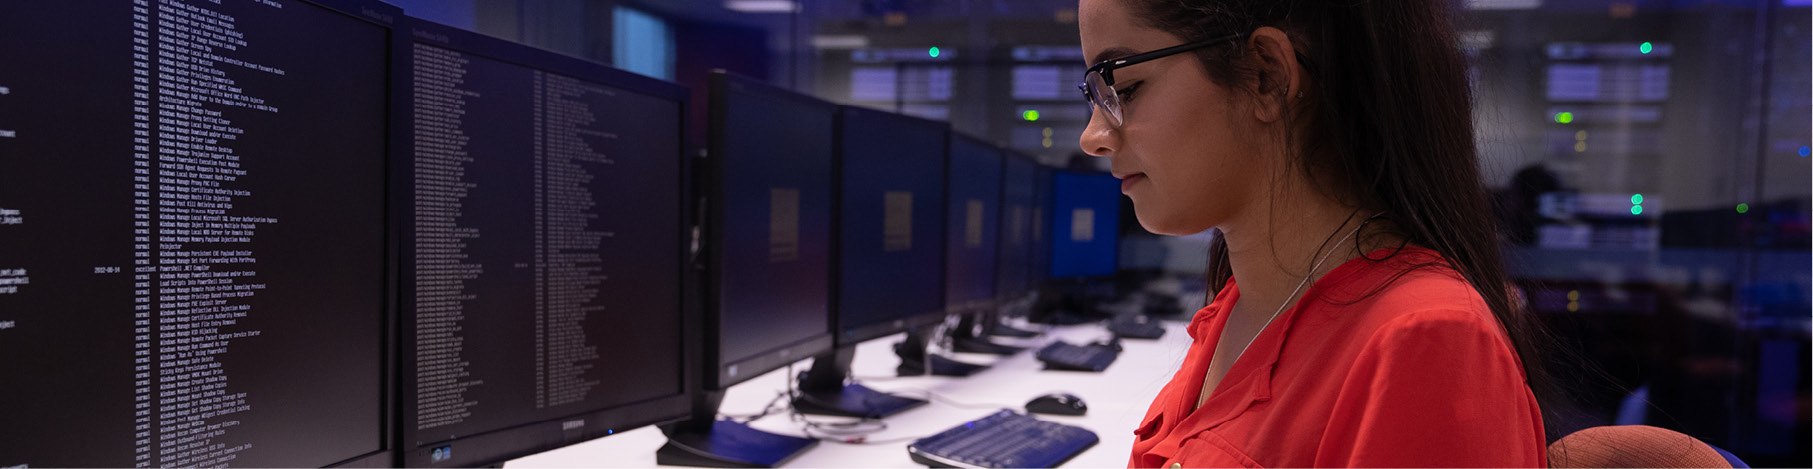 A student working in the server room.